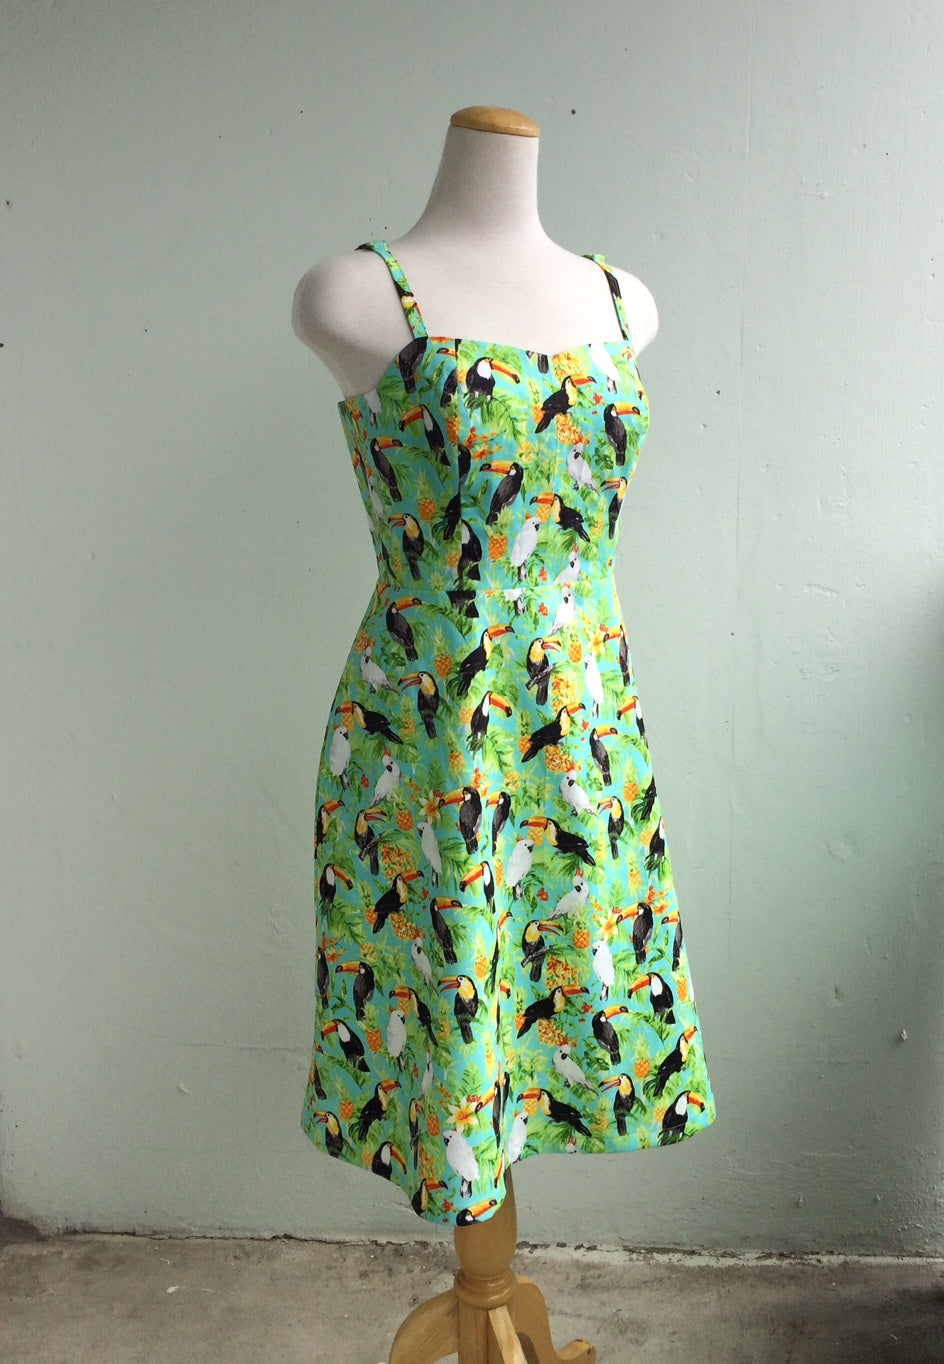 Summer Picnic Fit and Flare Sundress with Adjustable Straps in Green and Toucan Print